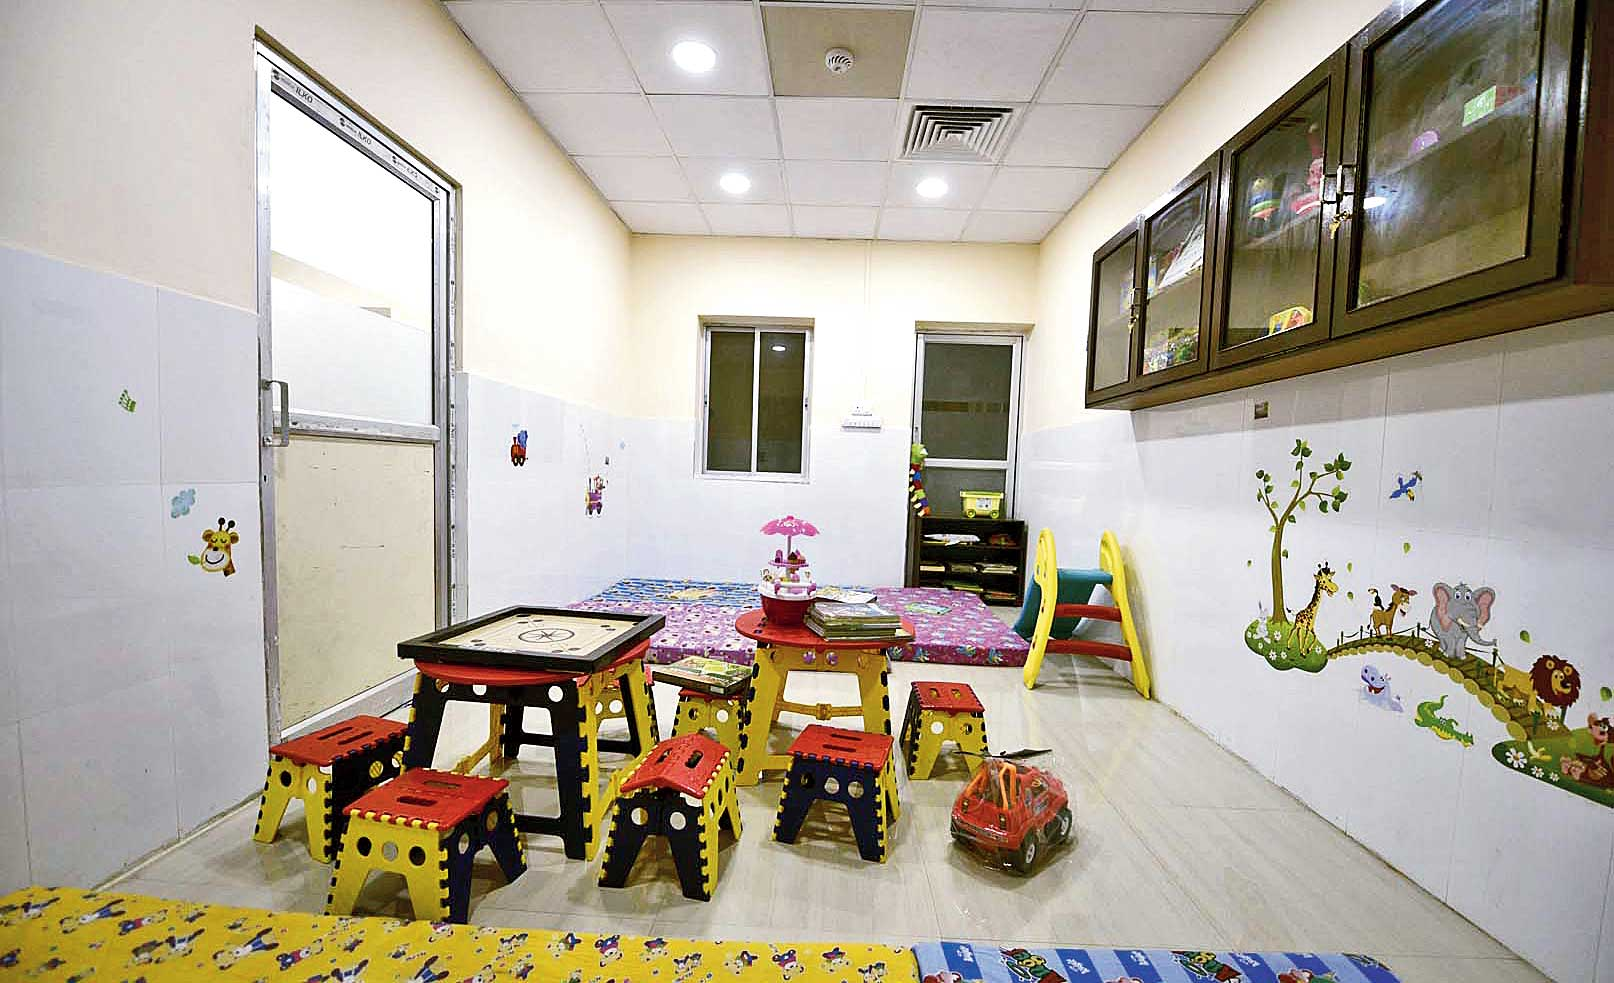 The playroom of the rehabilitation centre at the Institute of Child Health in Park Circus that has board games, building blocks, storybooks and a small slide.